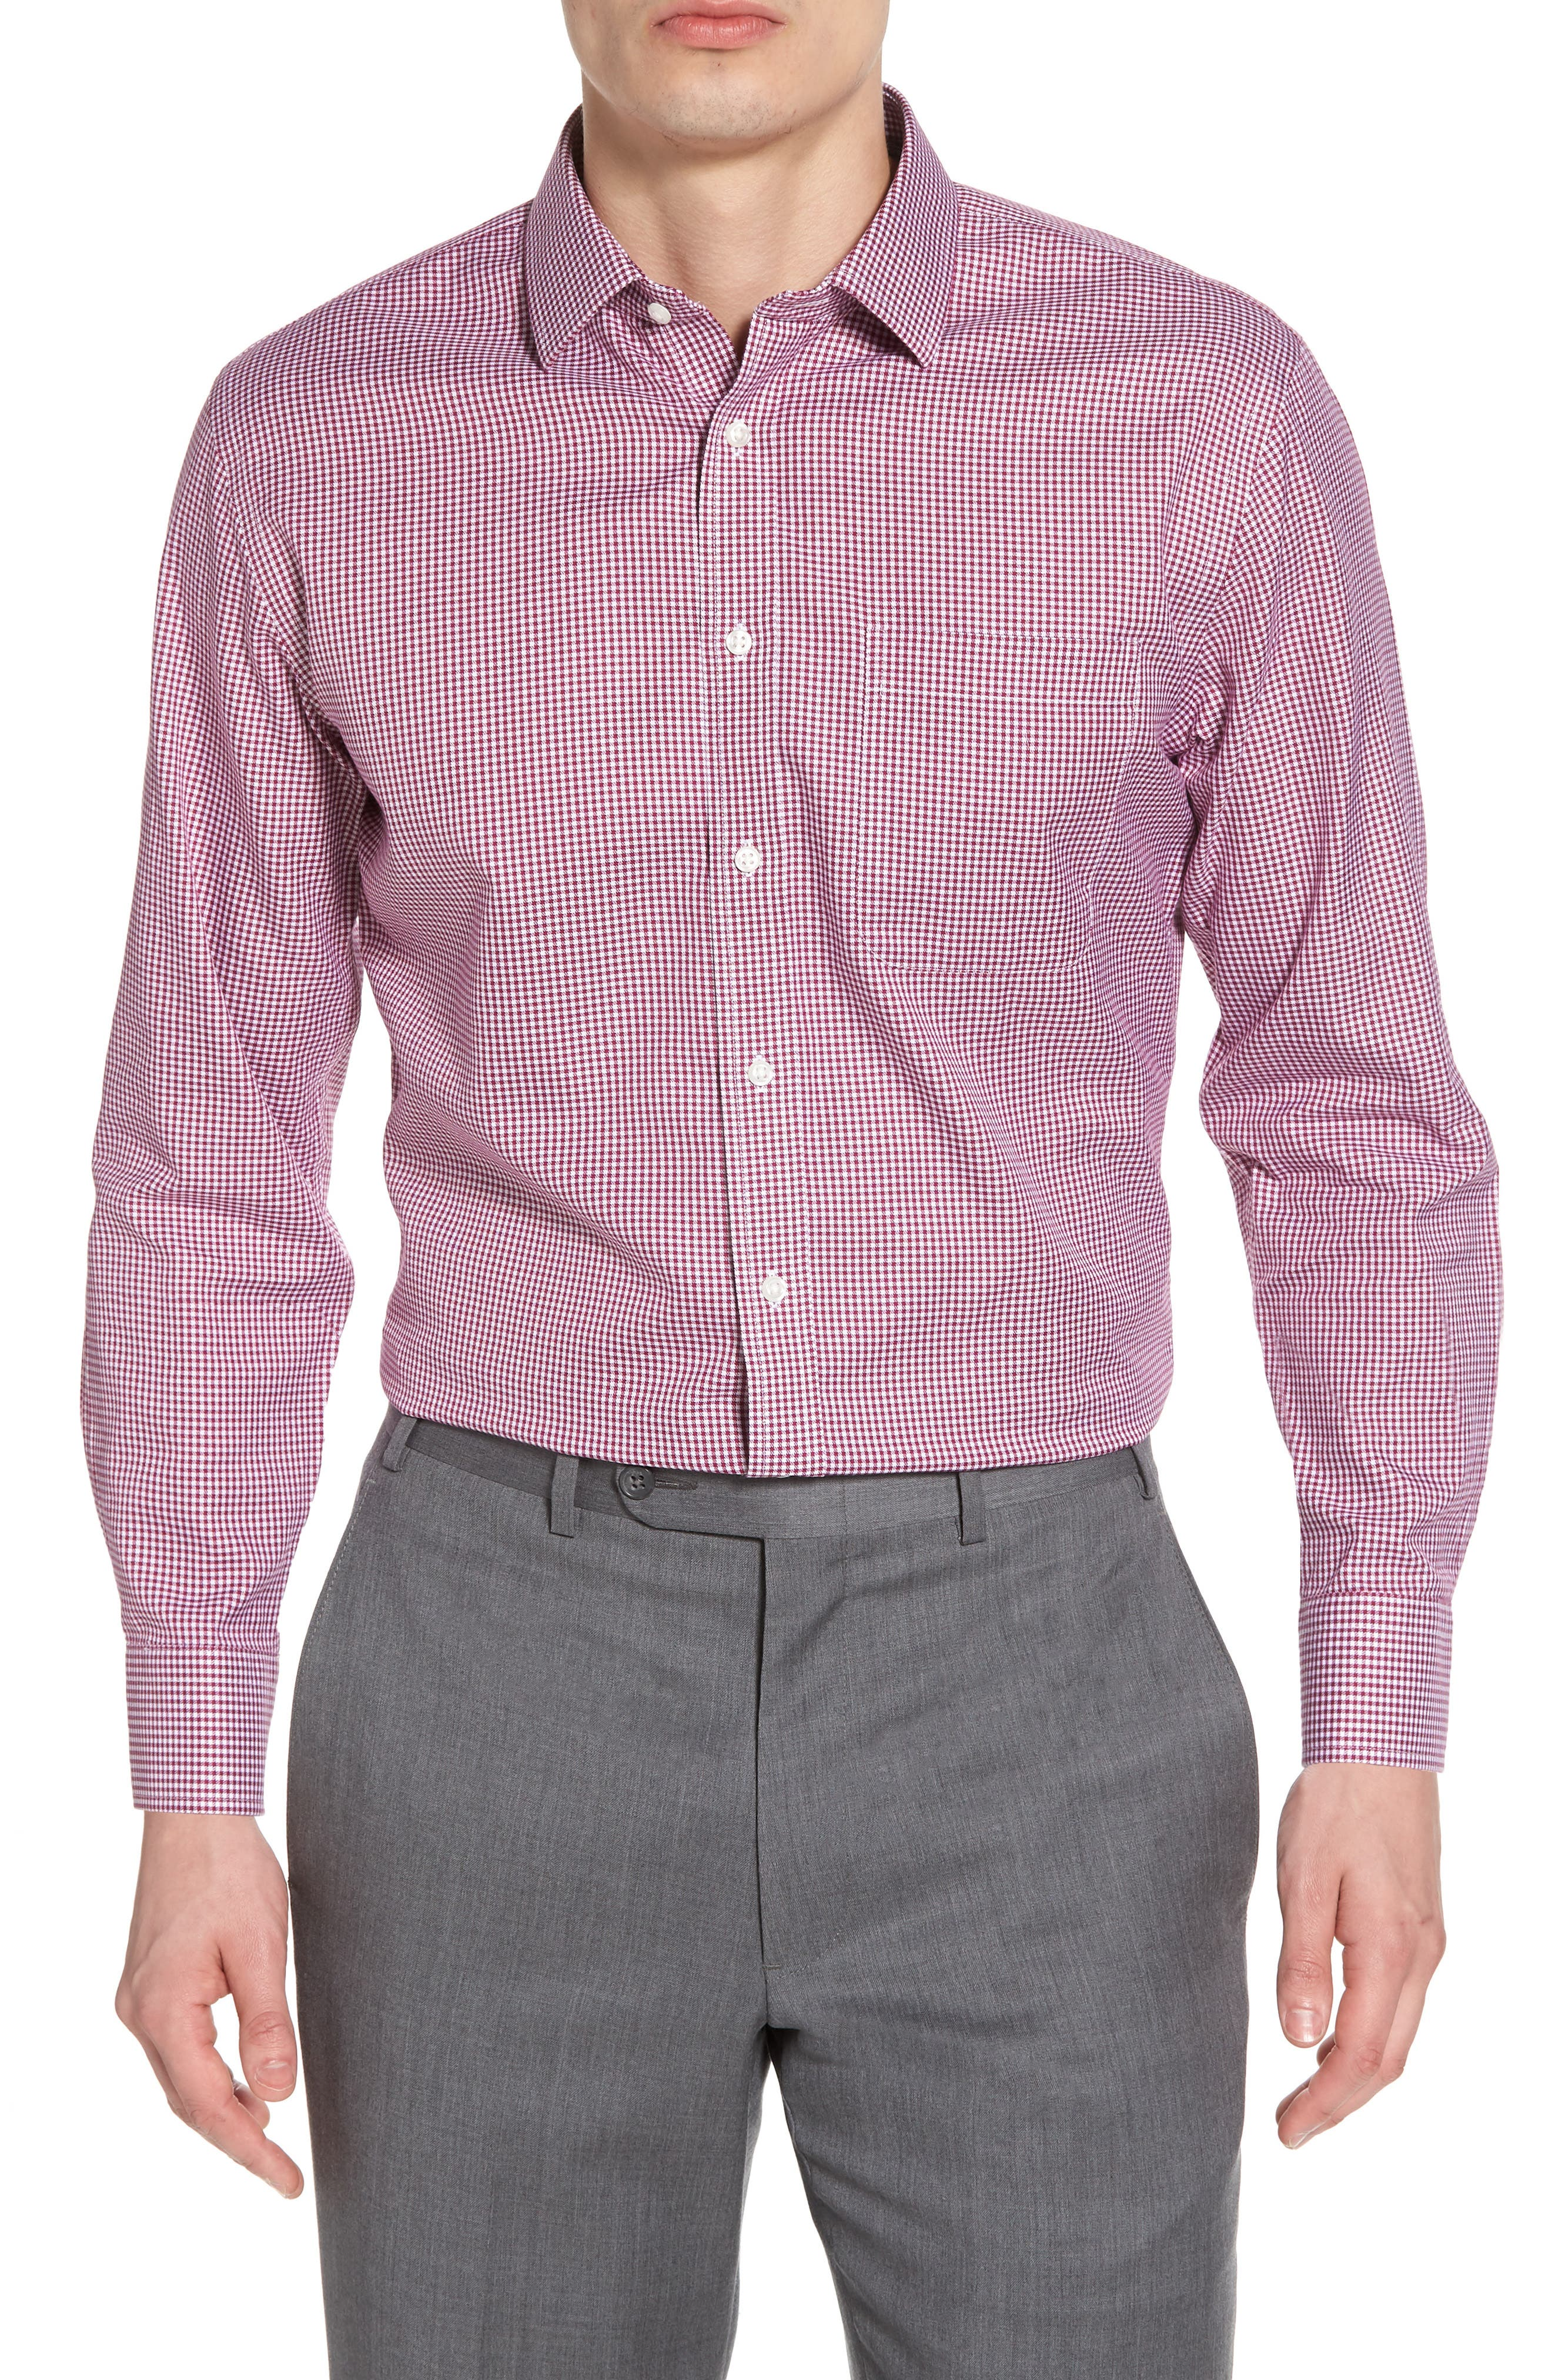 Smartcare<sup>™</sup> Trim Fit Mini Check Dress Shirt,                             Main thumbnail 1, color,                             Purple Boysen